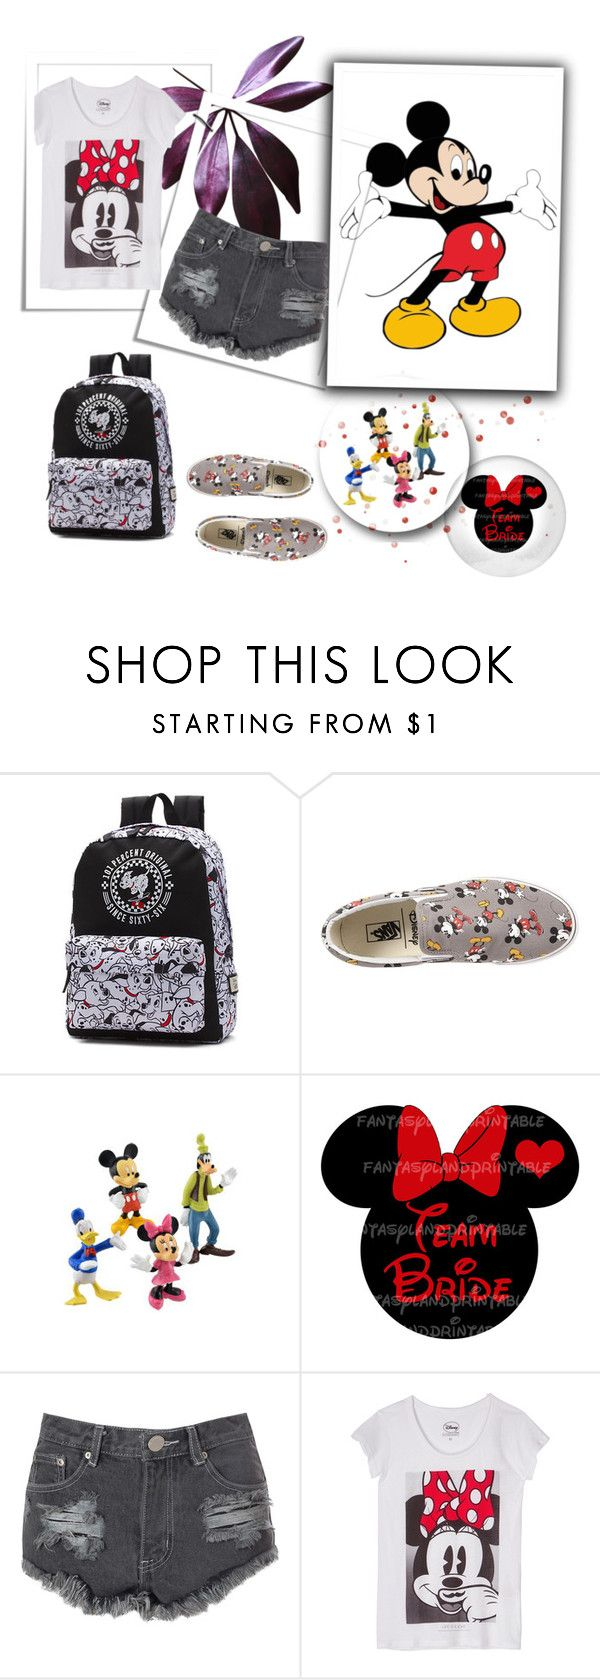 """Disney"" by nermina-okanovic ❤ liked on Polyvore featuring Vans, Disney, Glamorous, ElevenParis and disneycharacter"